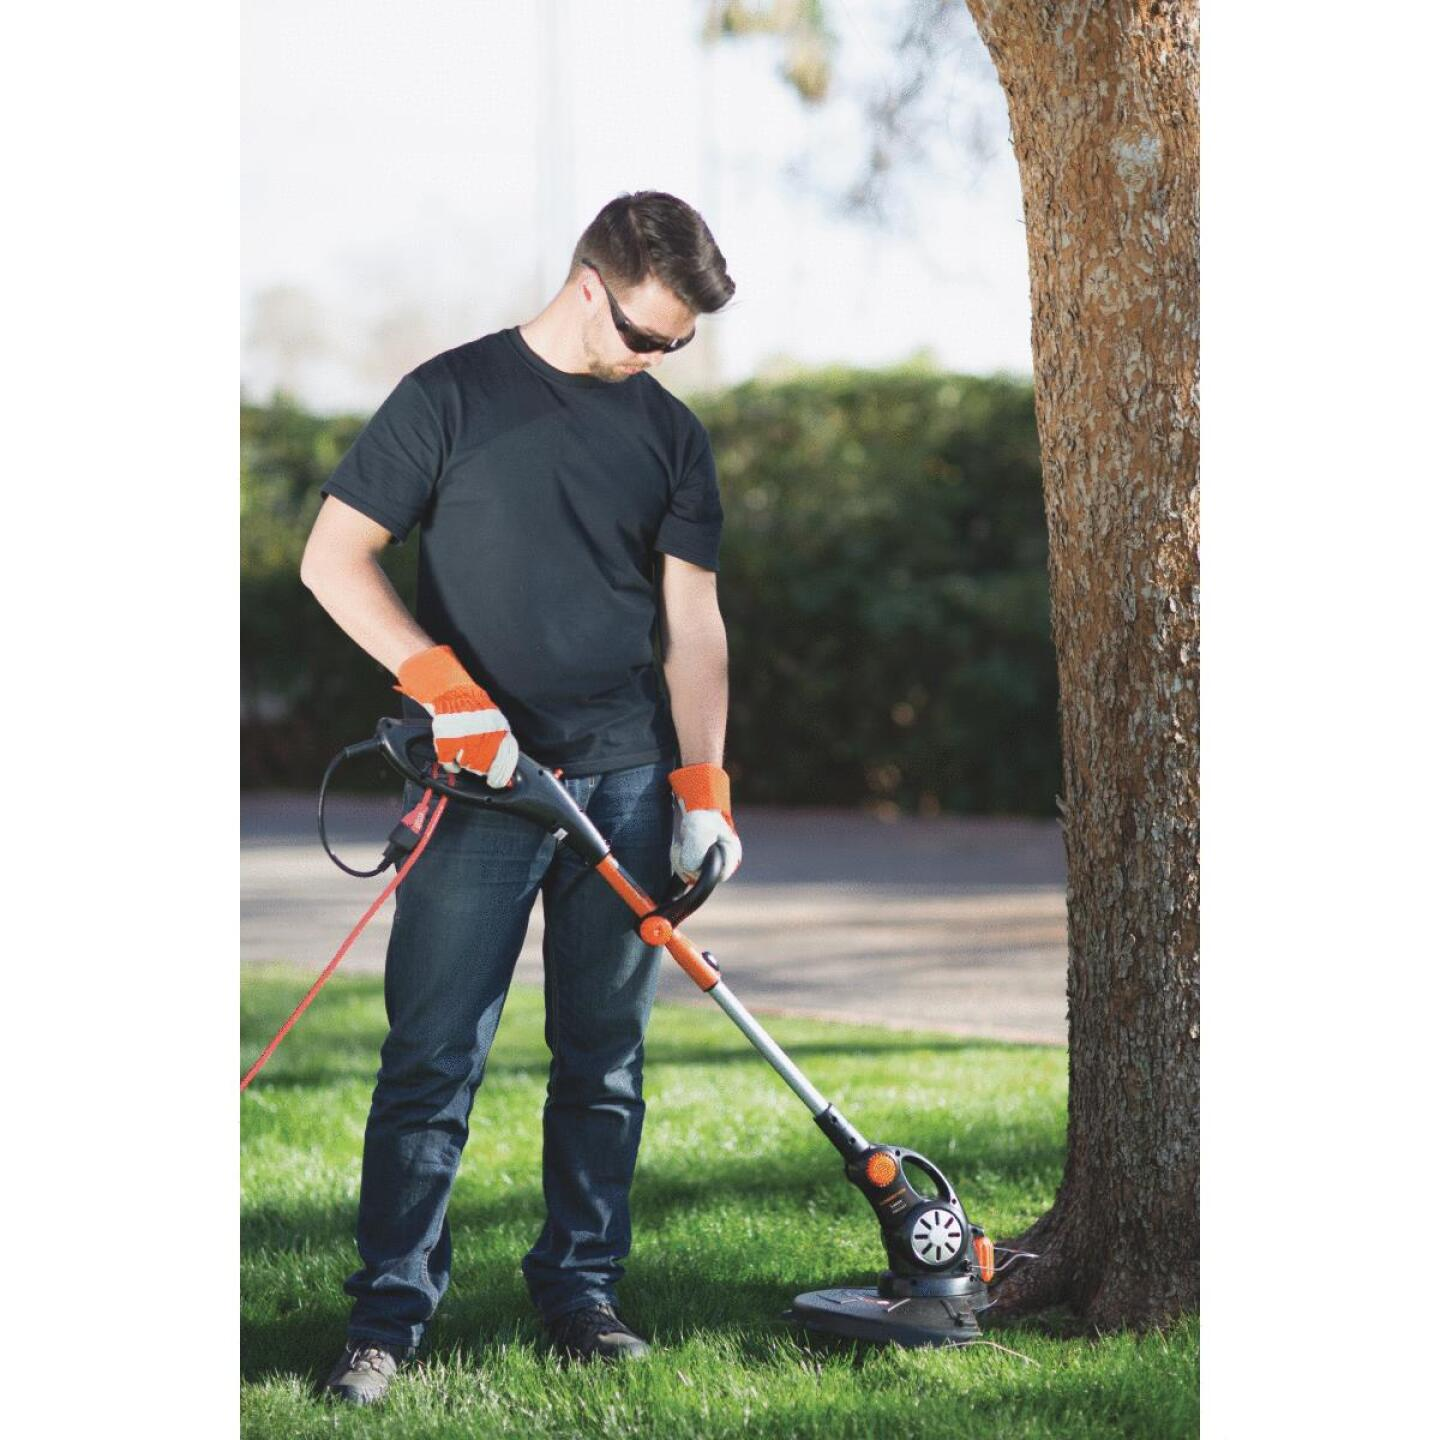 Remington RM115ST 14 In. 5.5-Amp Straight Shaft Corded Electric String Trimmer/Edger Image 7